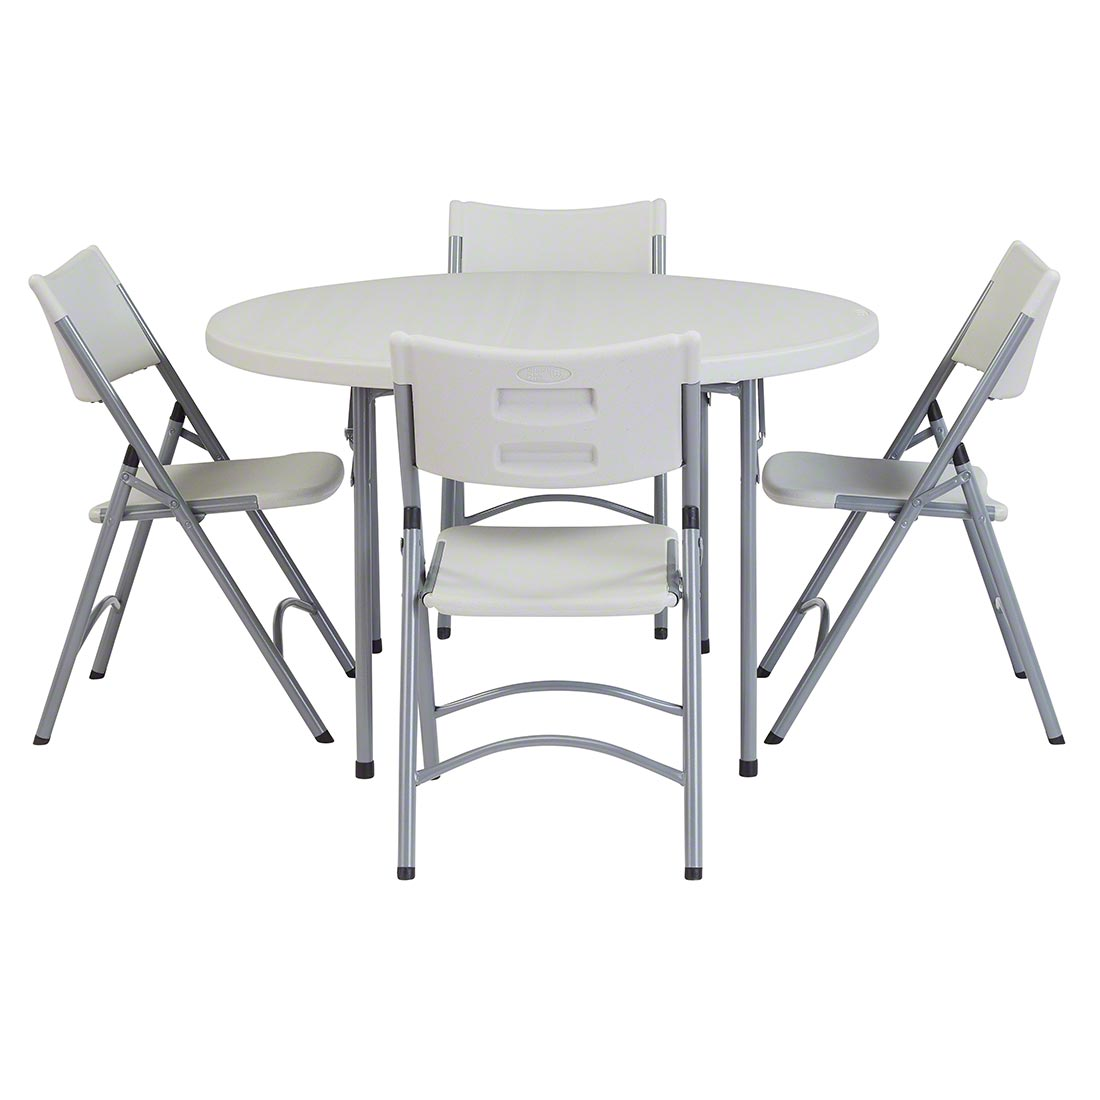 Nps 48 Round Folding Table Chairs Package Stagedrop